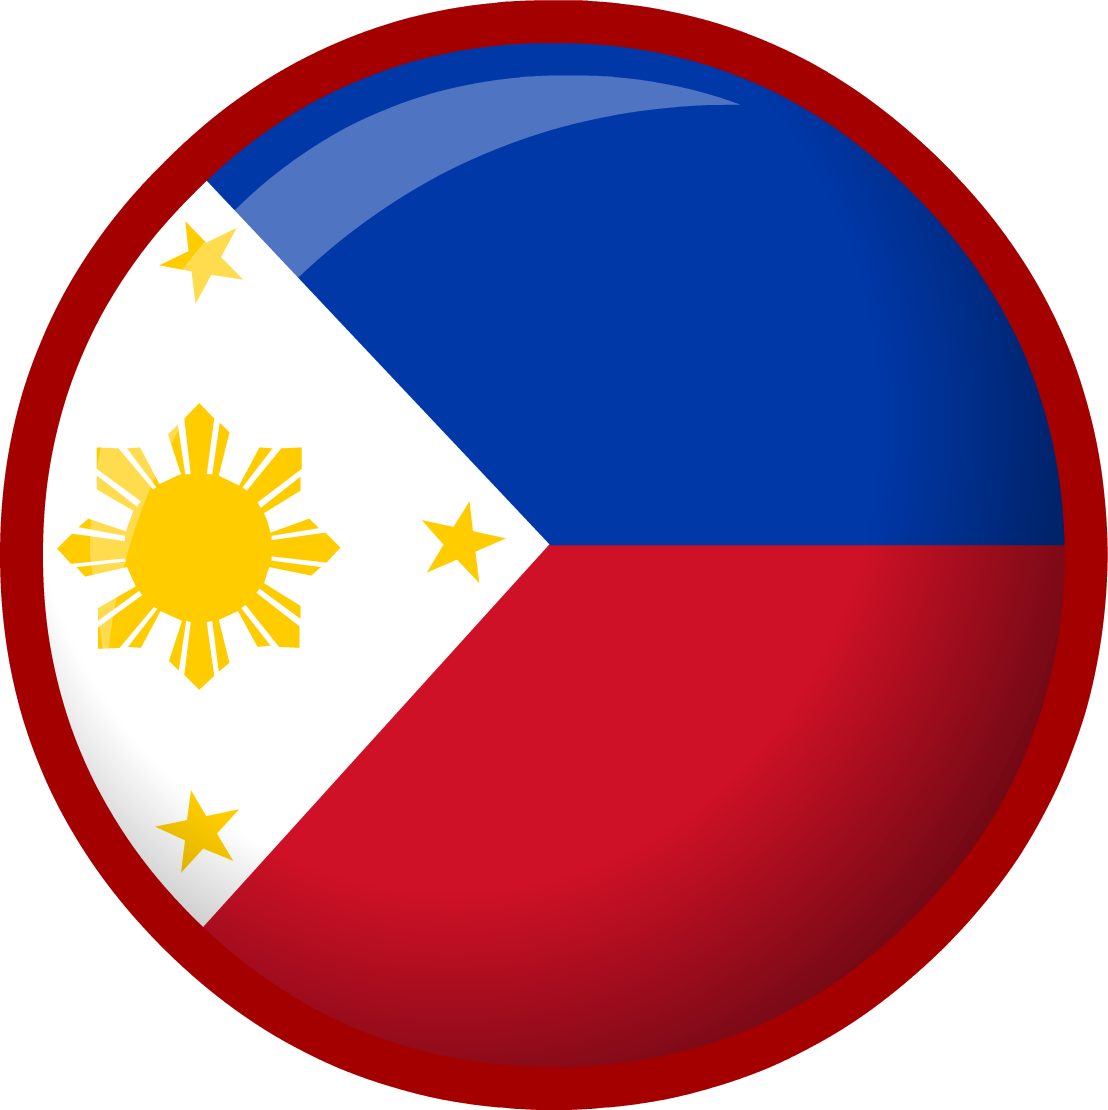 academy-of-pastry-bakery-arts-international-school-philippines-flag